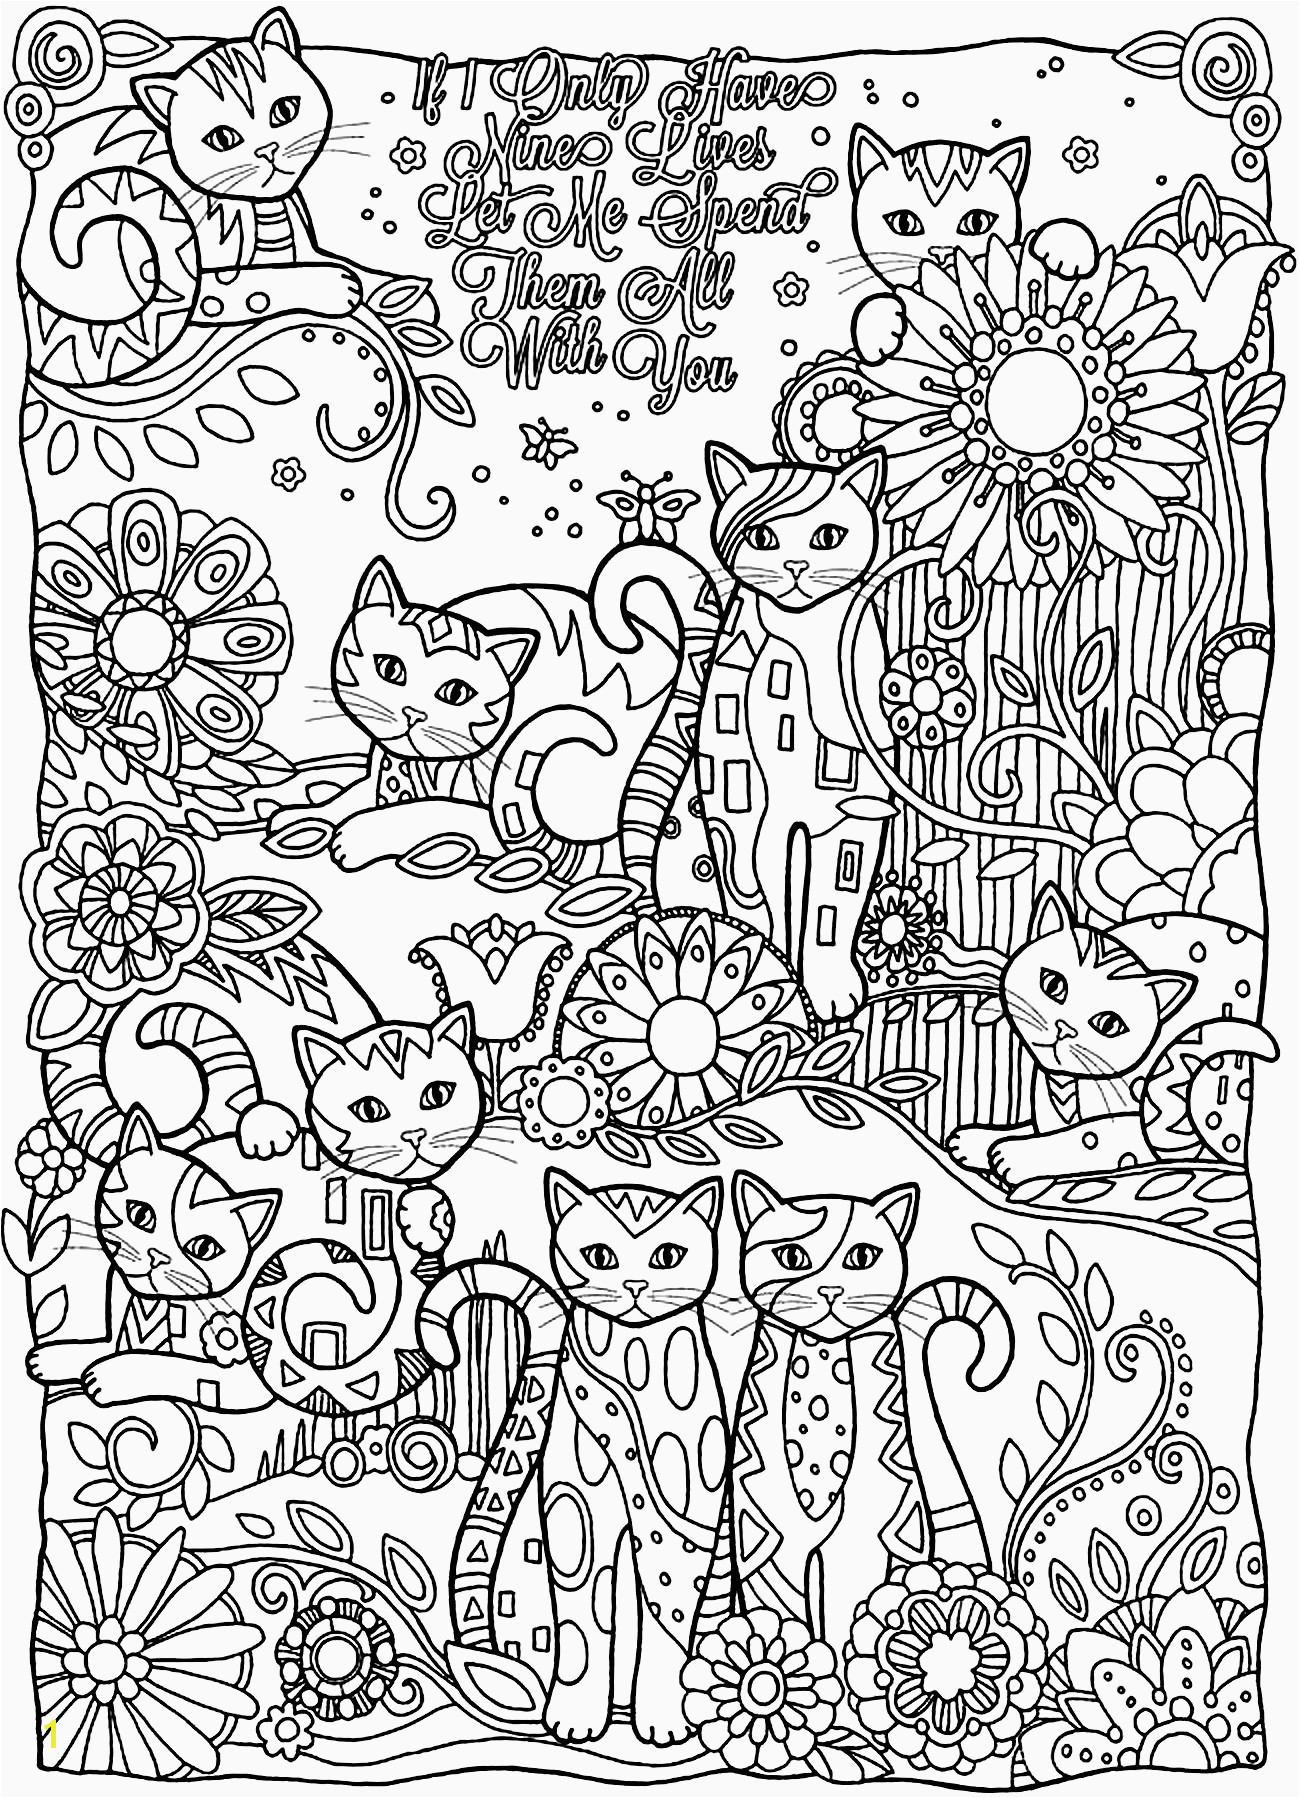 Abstract Coloring Pages for Teenagers Difficult Abstract Coloring Pages for Teenagers Difficult Fresh Cool Cute